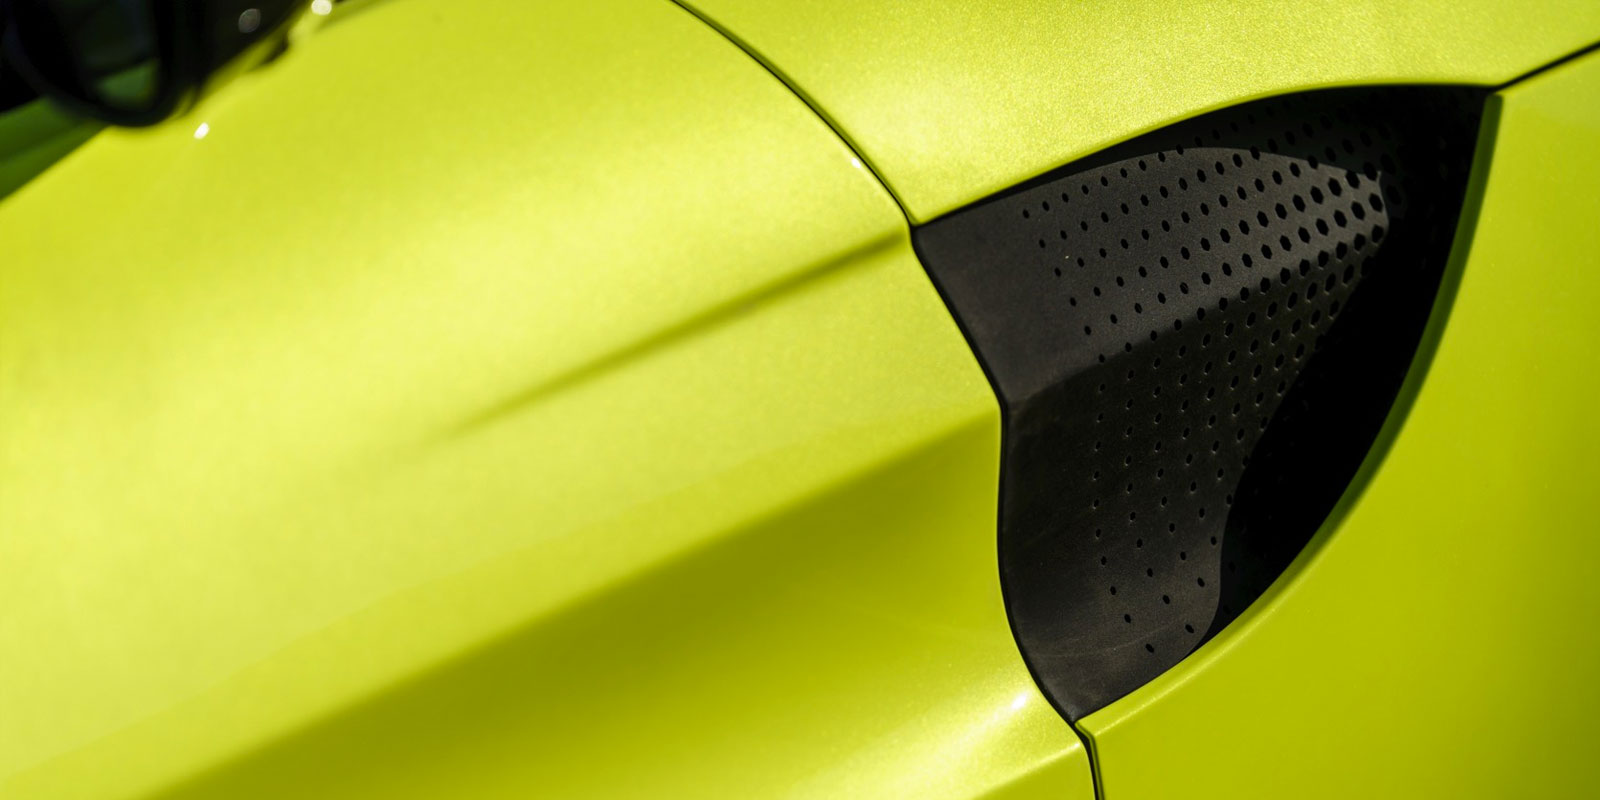 Aston Martin New Vantage - The Archetypal Hunter image 10